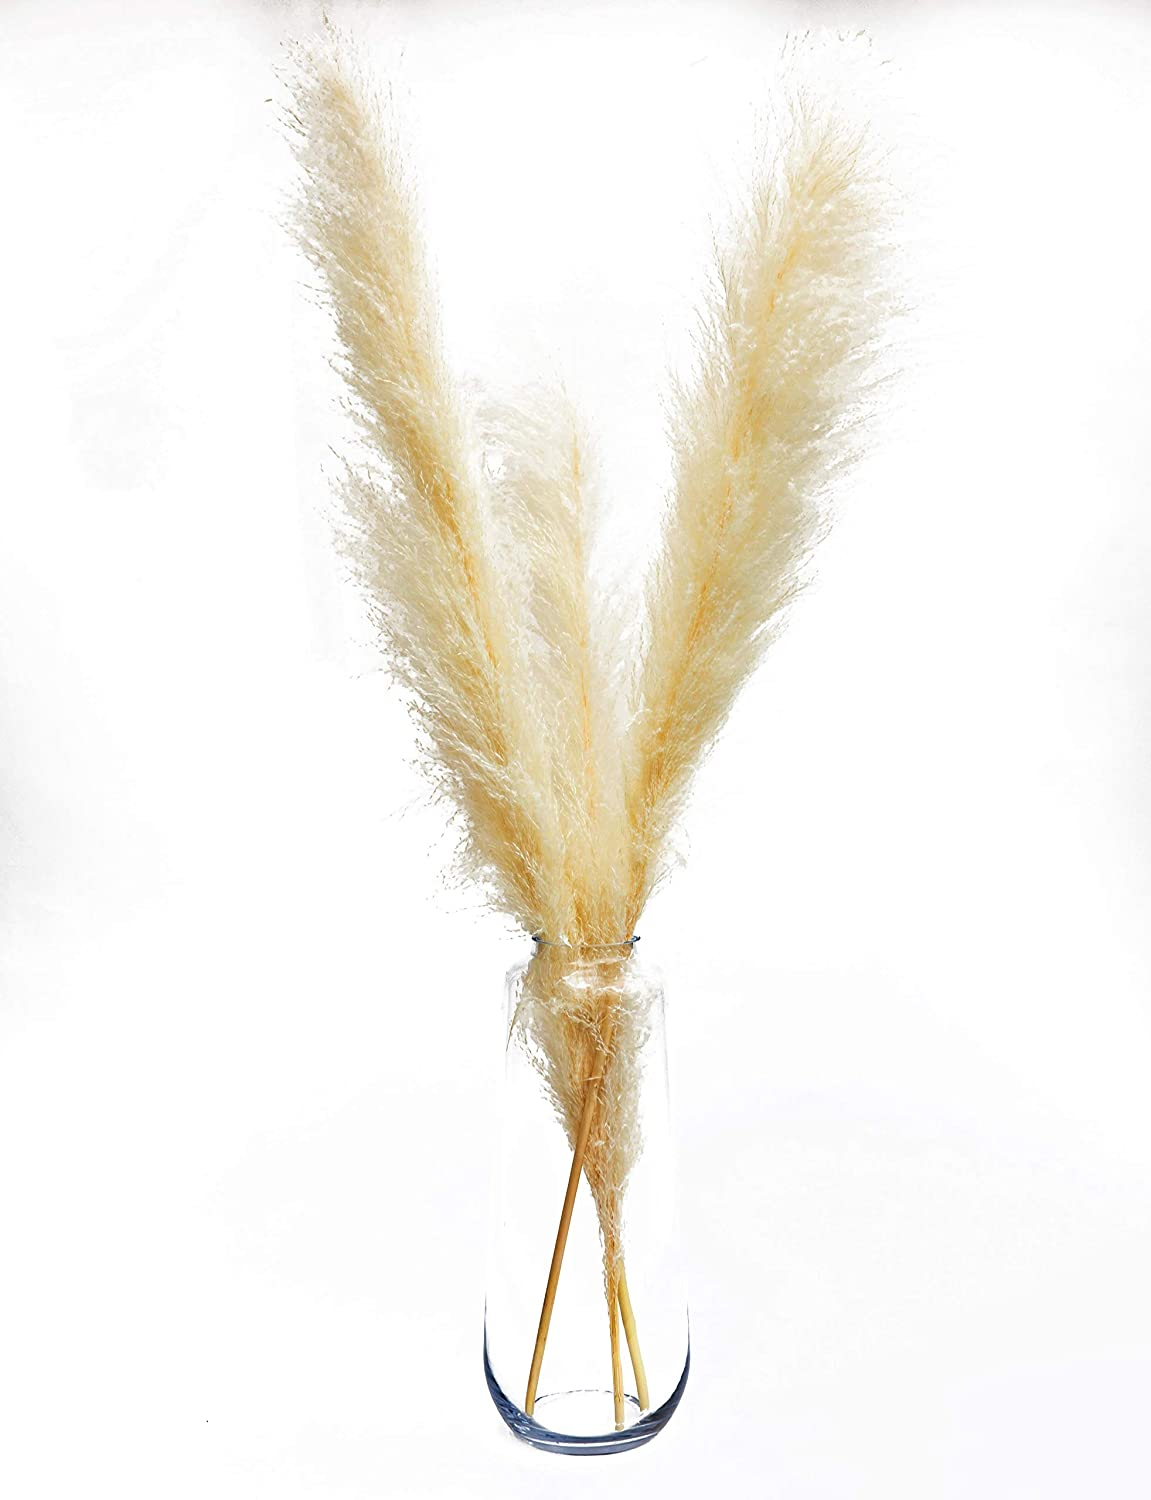 3 Stems Fluffy White Dried Pampas Grass, Boho Wedding Decor Home Decor Large Flower Decor for Tall Floor Vase - 4 Foot Tall Dried Flowers